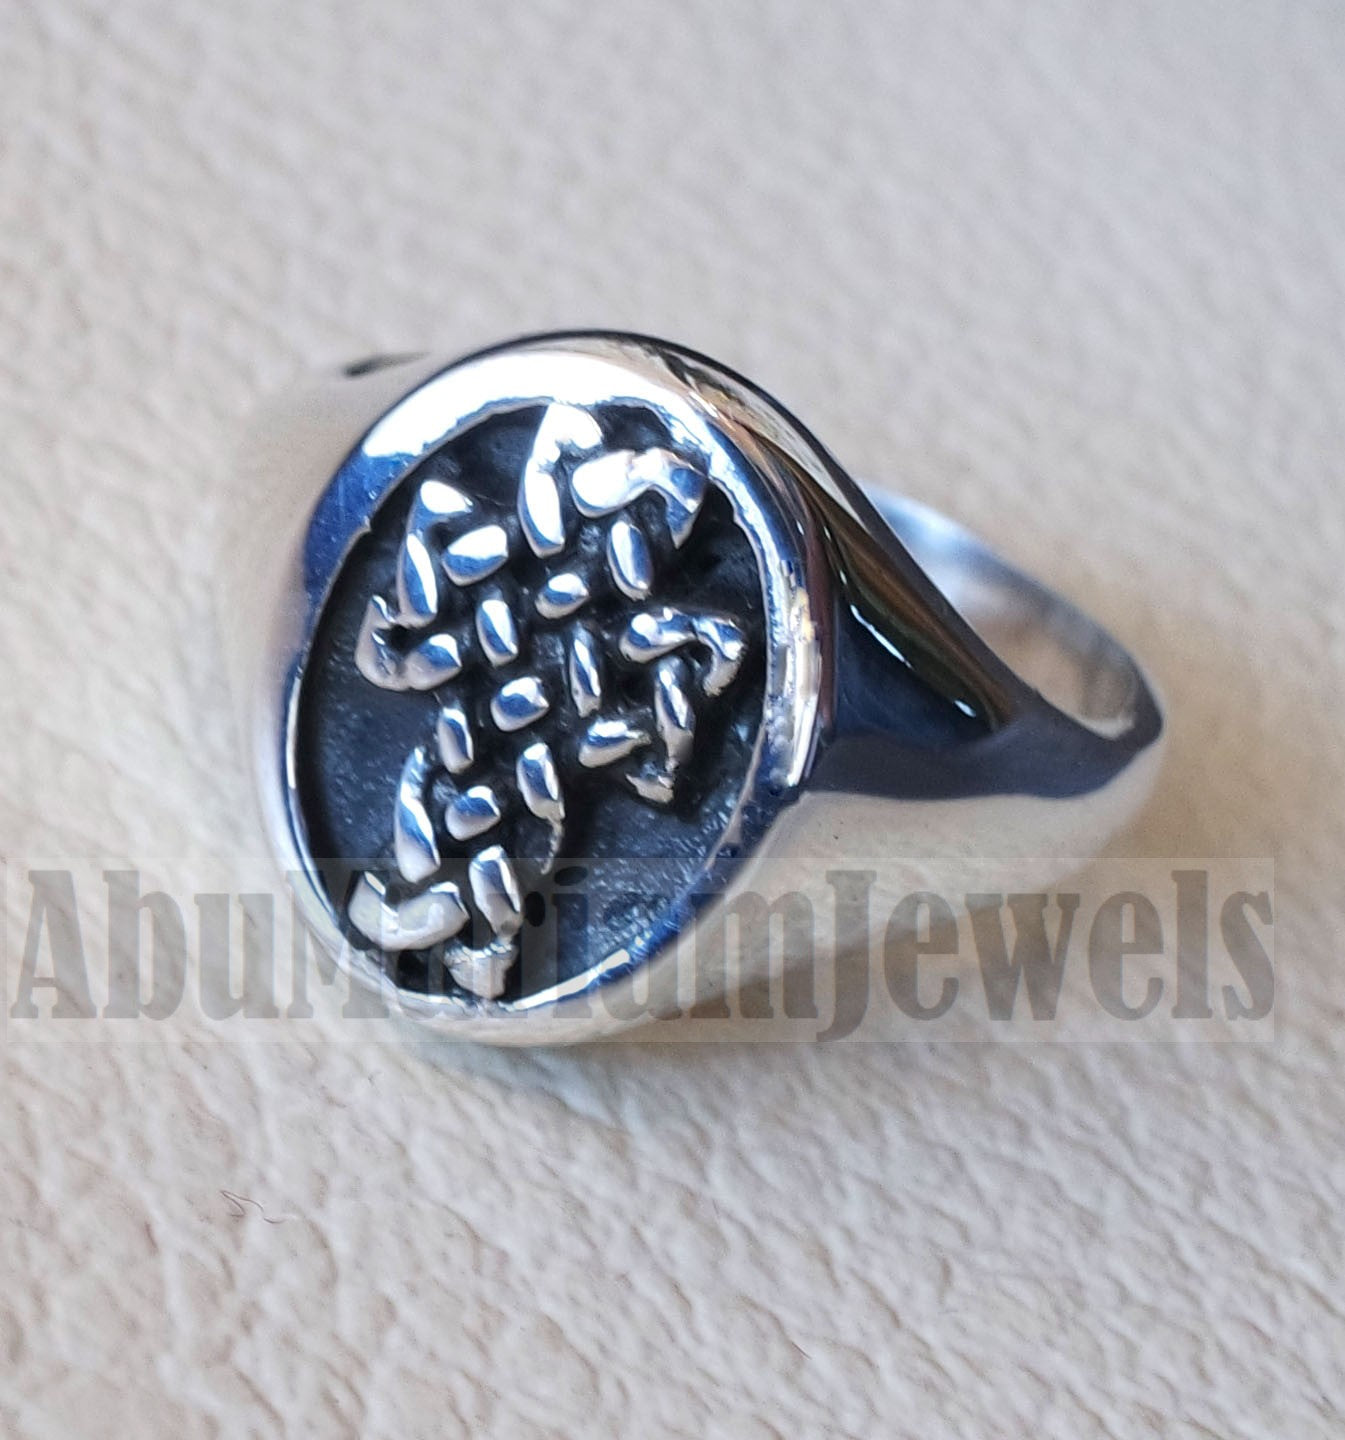 Celtic cross jesus christian sterling silver 925 and pinkie man ring jewelry fast shipping catholic orthodox style all sizes